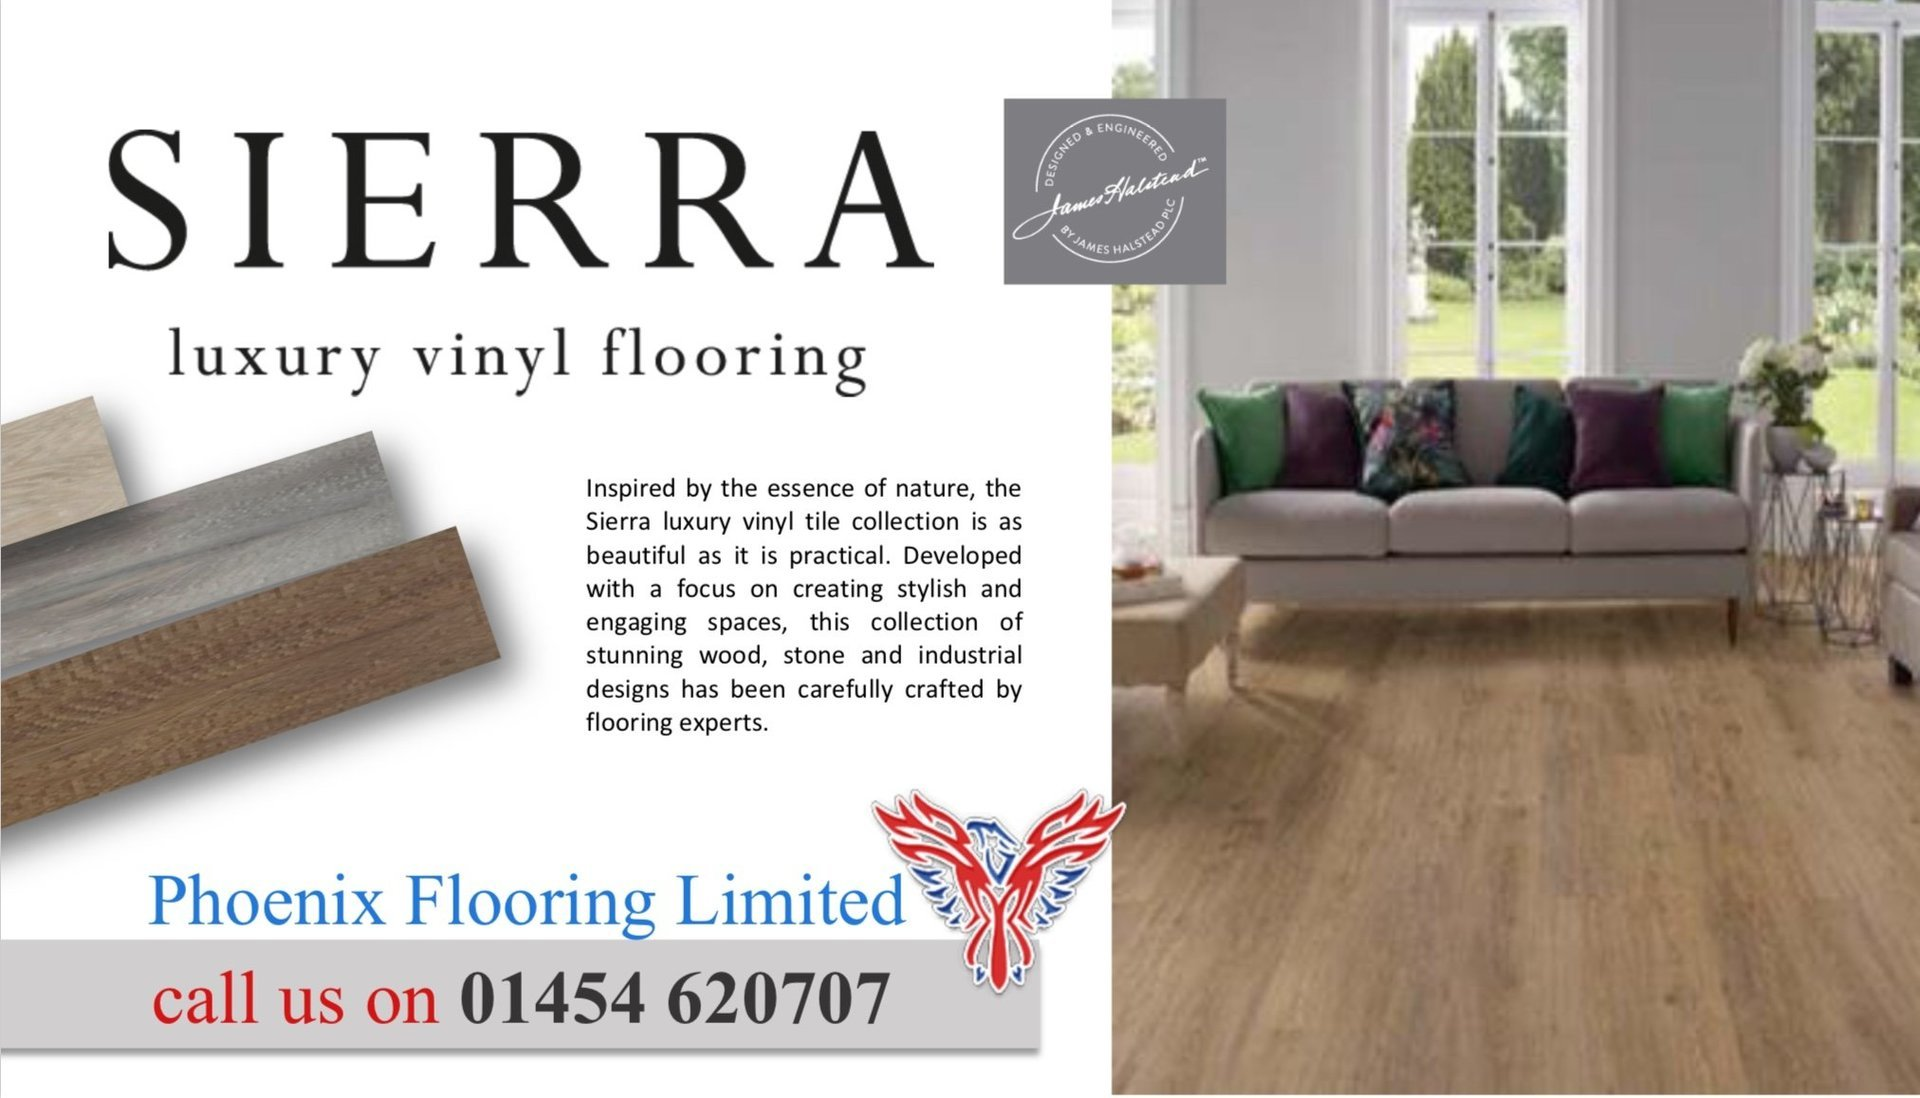 The All New And Exciting Sierra Luxury Vinyl Flooring Collection Is - Vinyl flooring phoenix